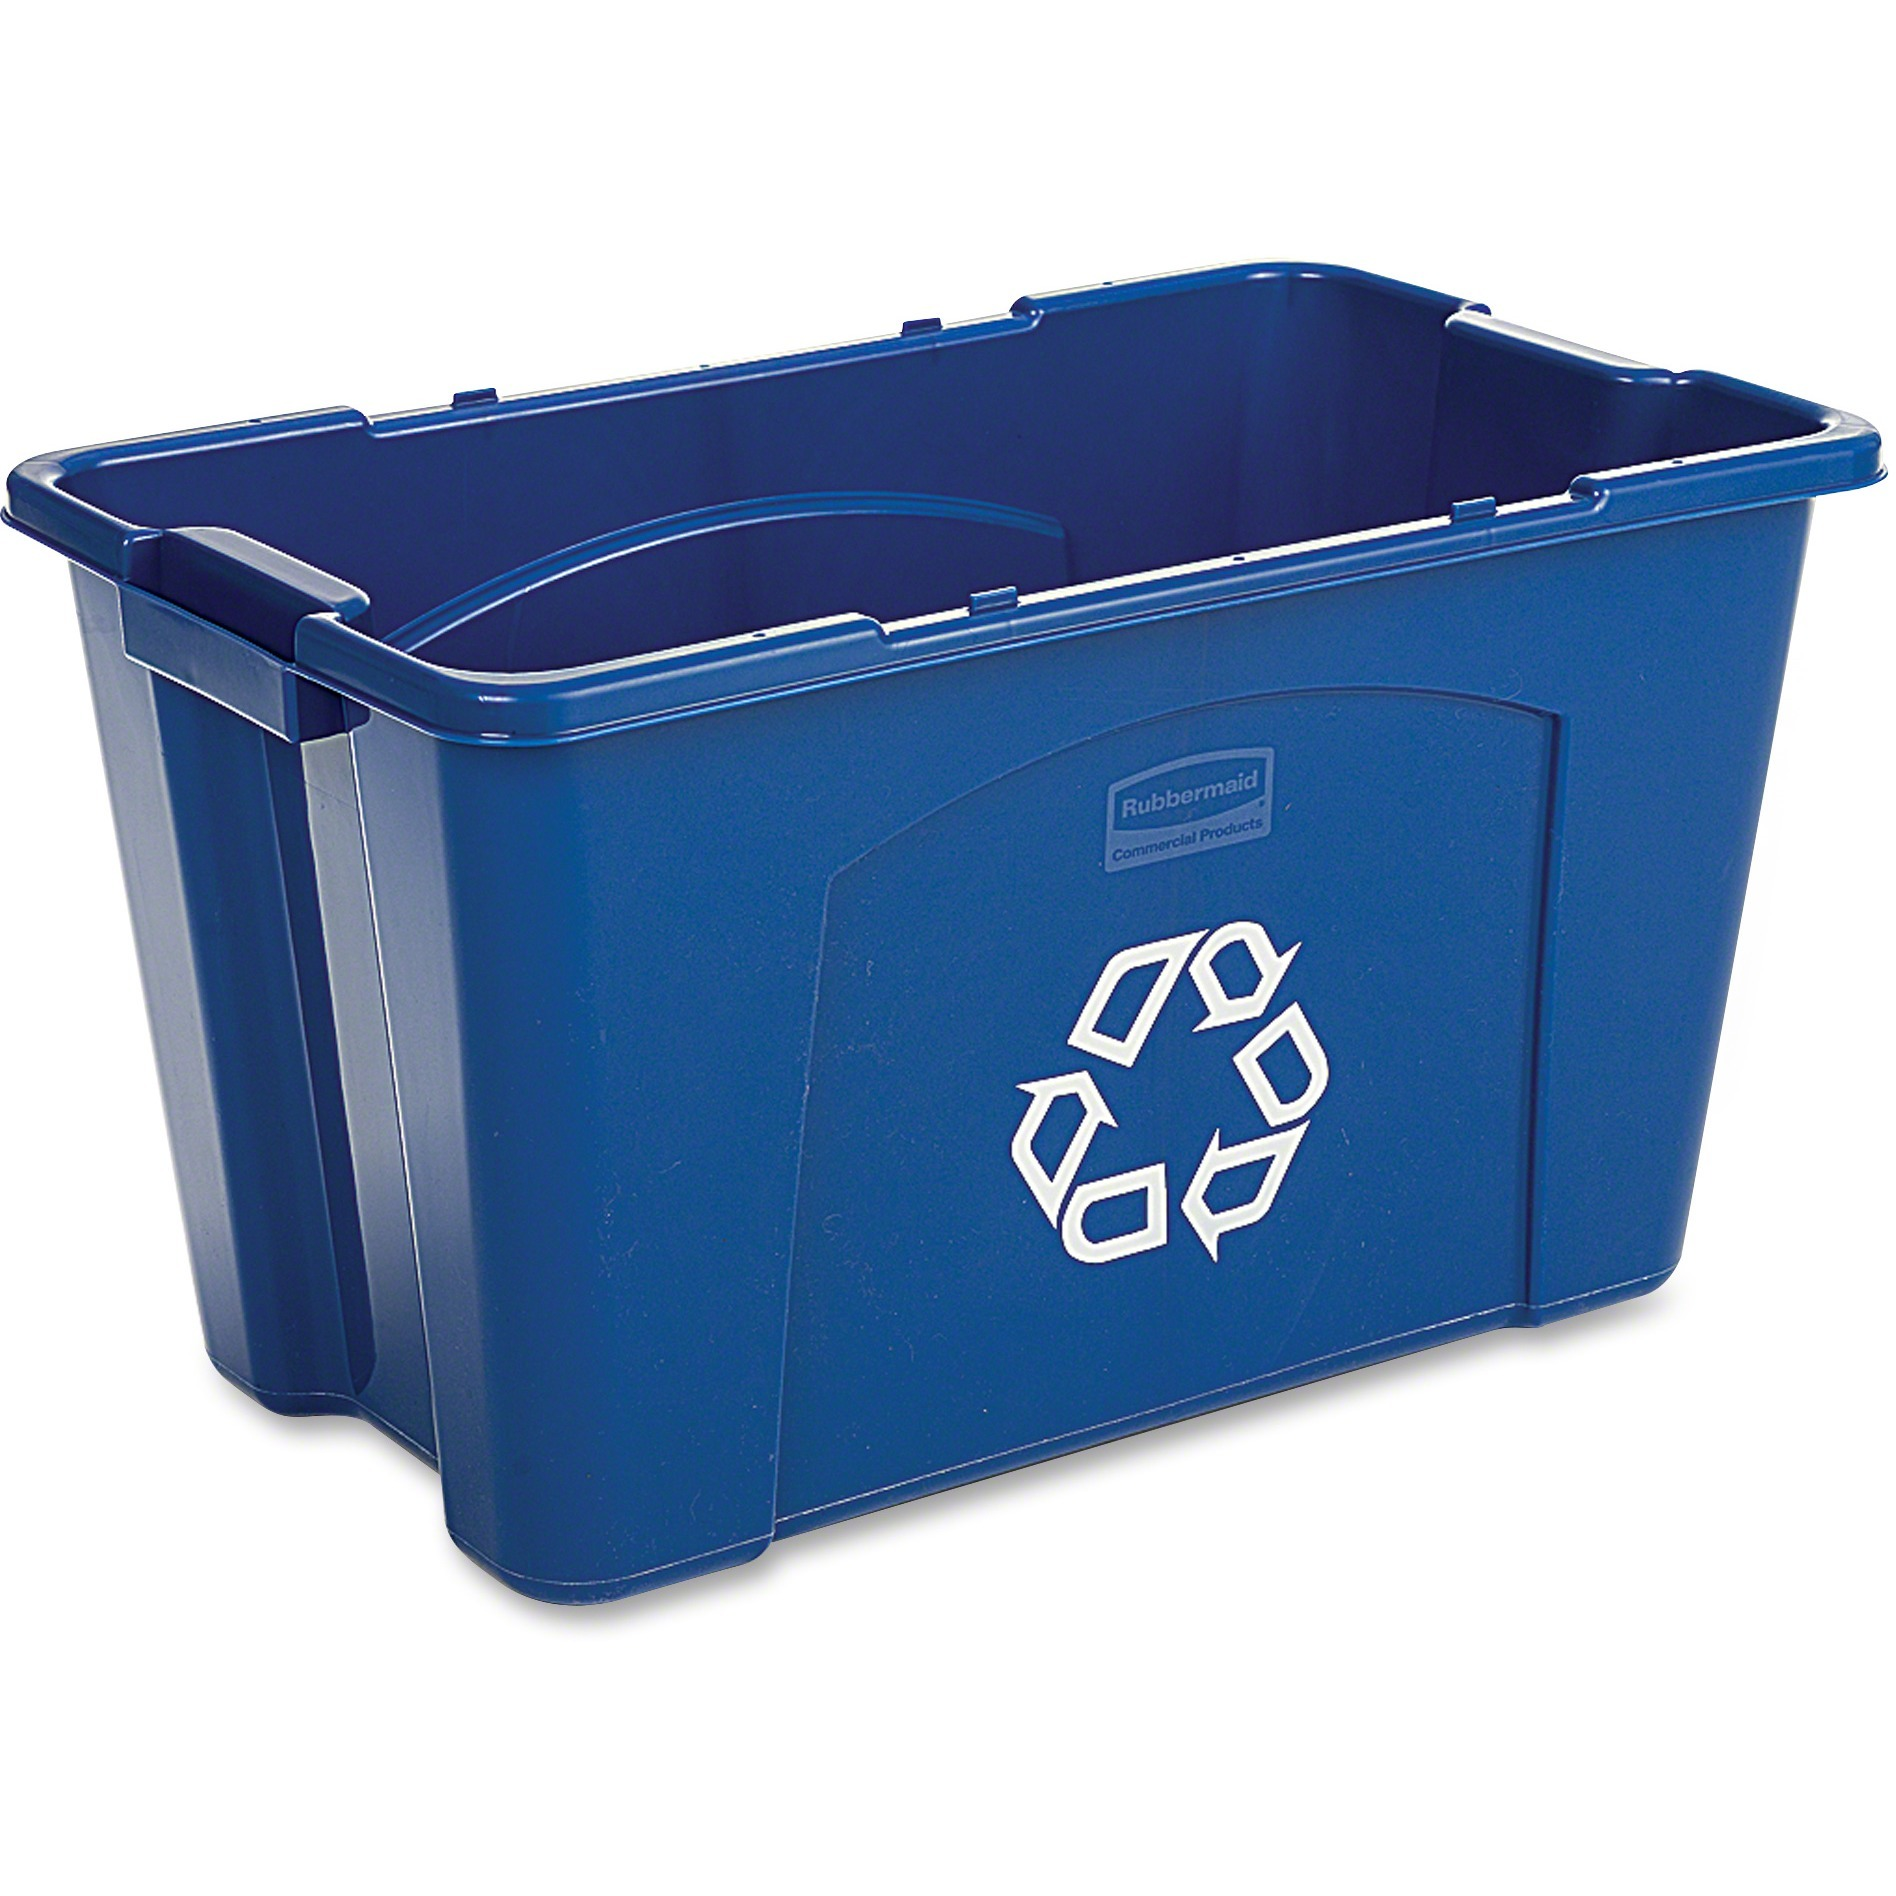 Rubbermaid Commercial Products FG571873BLUE Stackable Recycling Bin, 18 Gallon, Blue